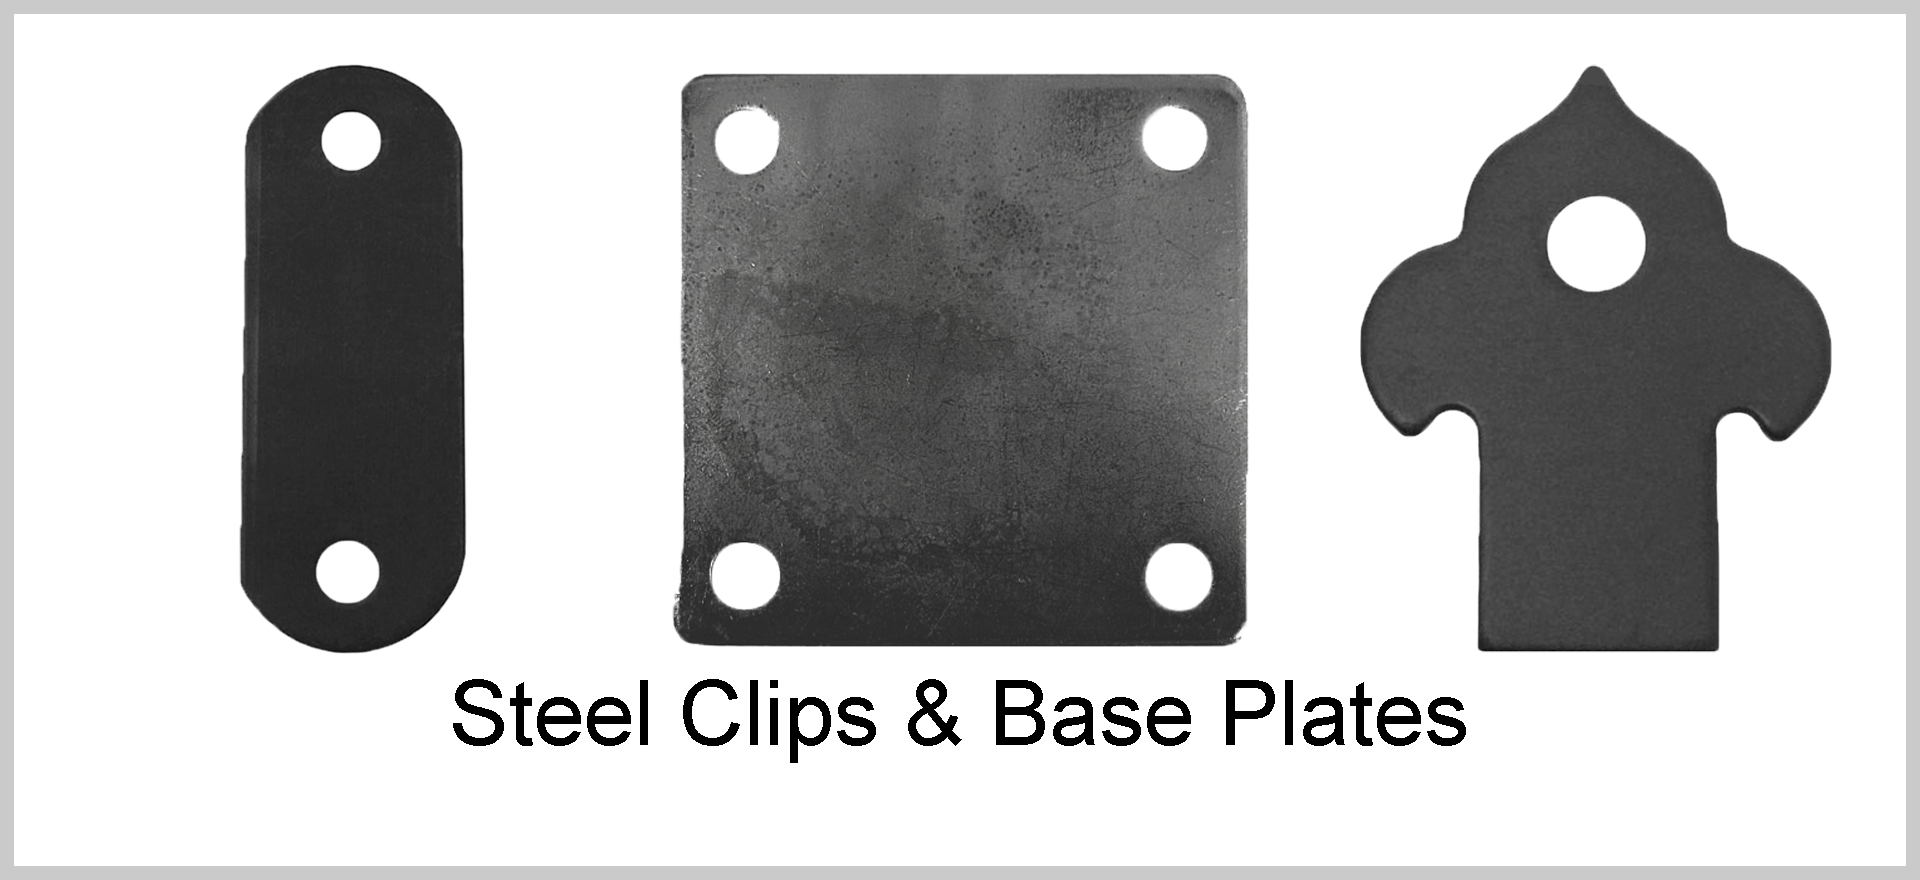 Superior Ornamental Supply - Steel Clips & Base Plates